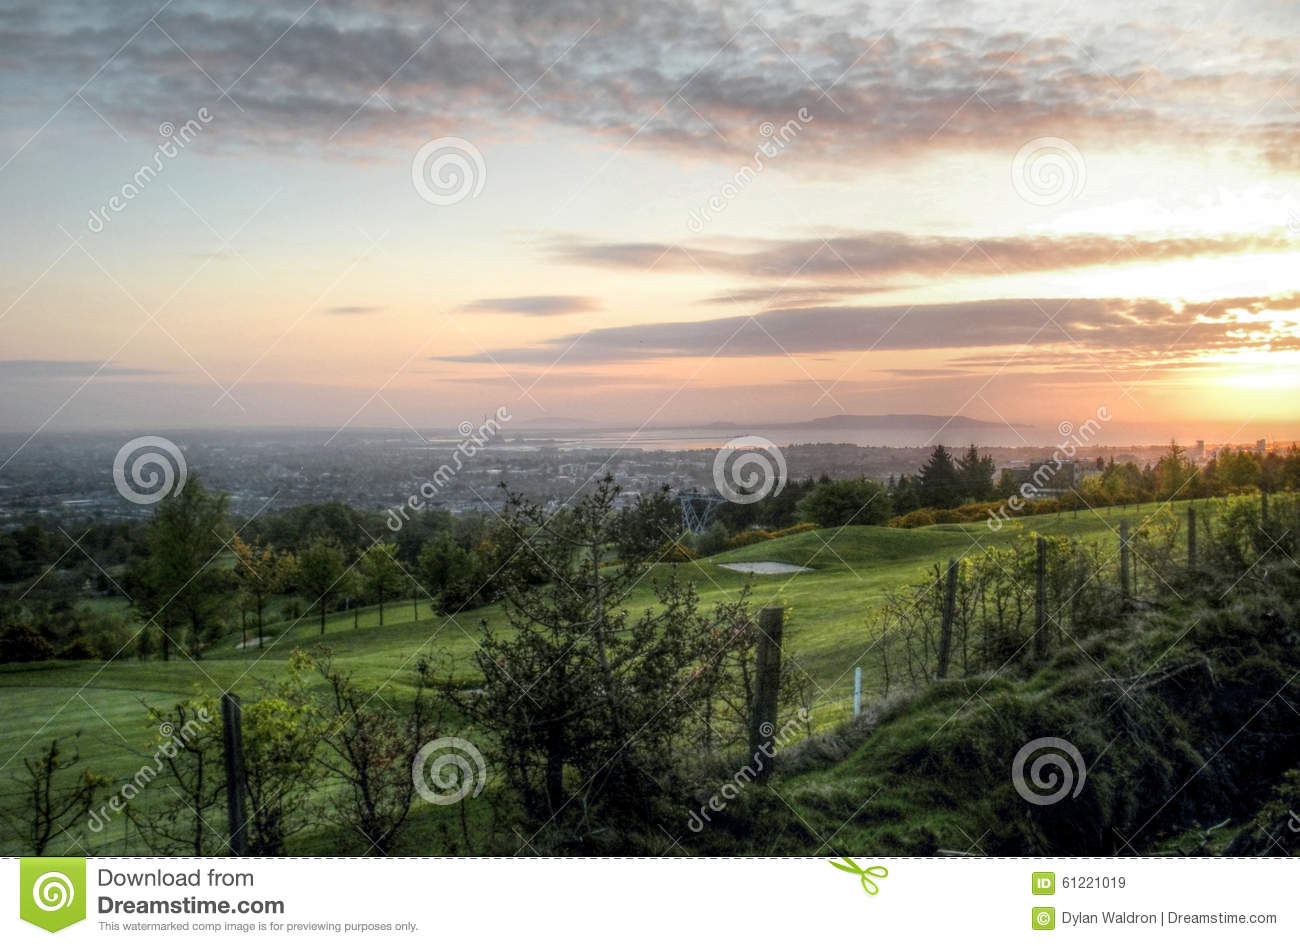 dublin sunrise stock image image of coast irish sunrise 61221019